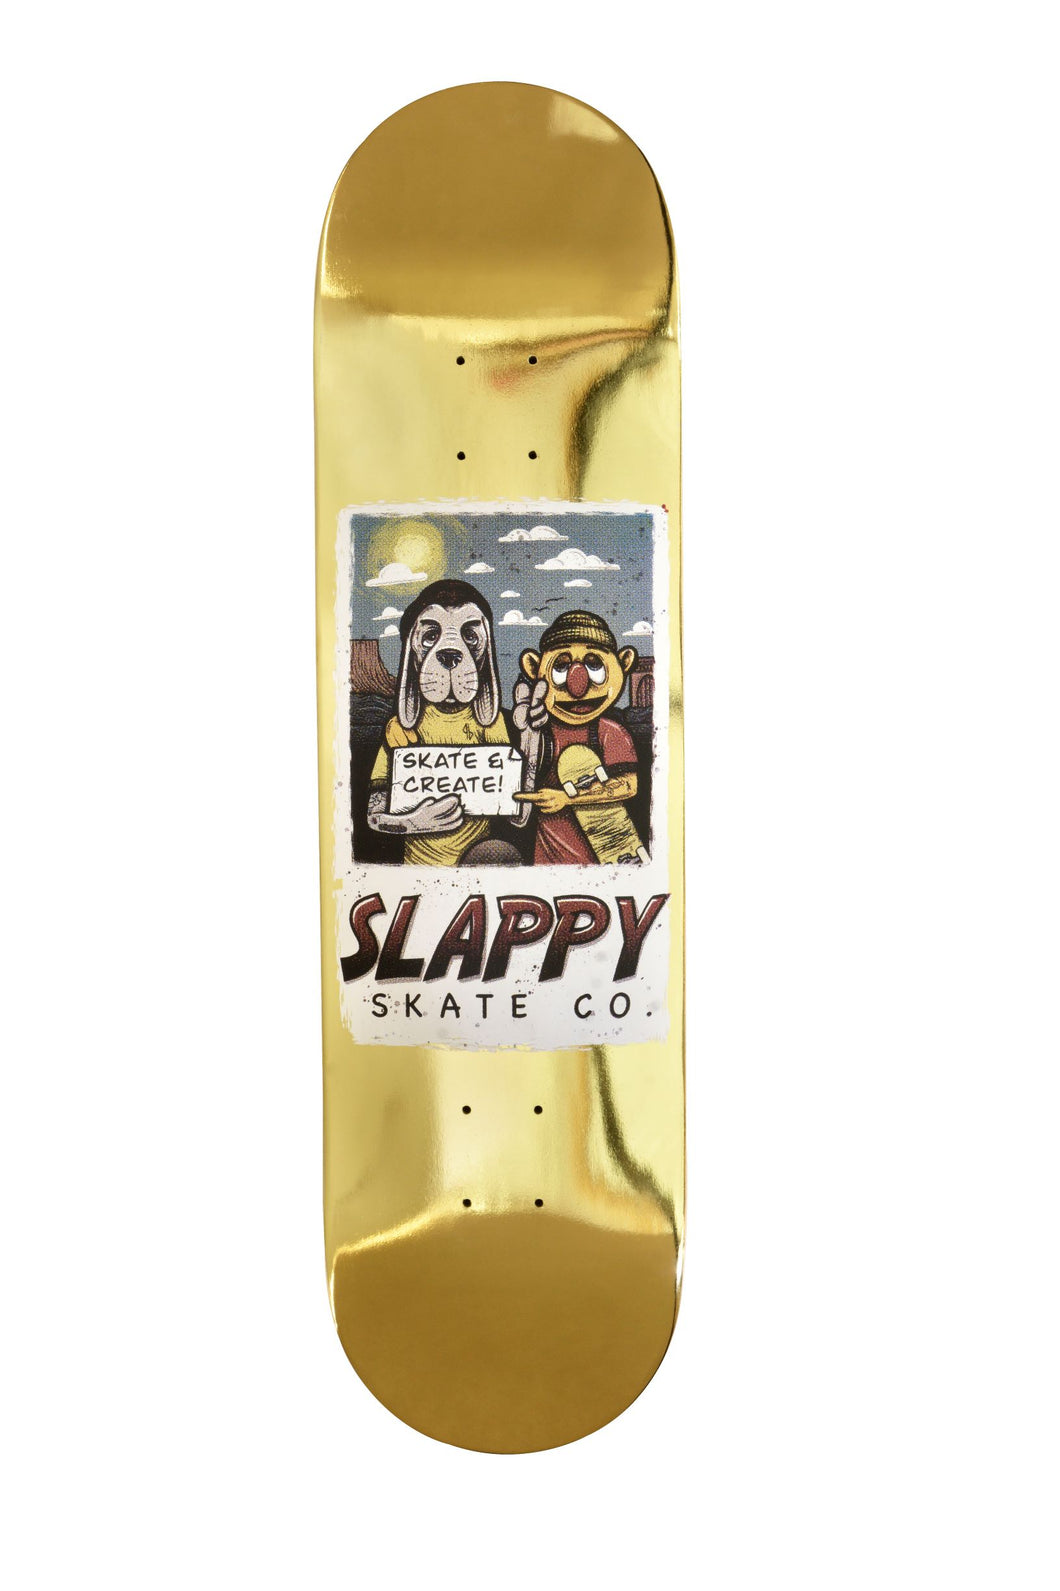 Slappy Skateboard - Skate and Create